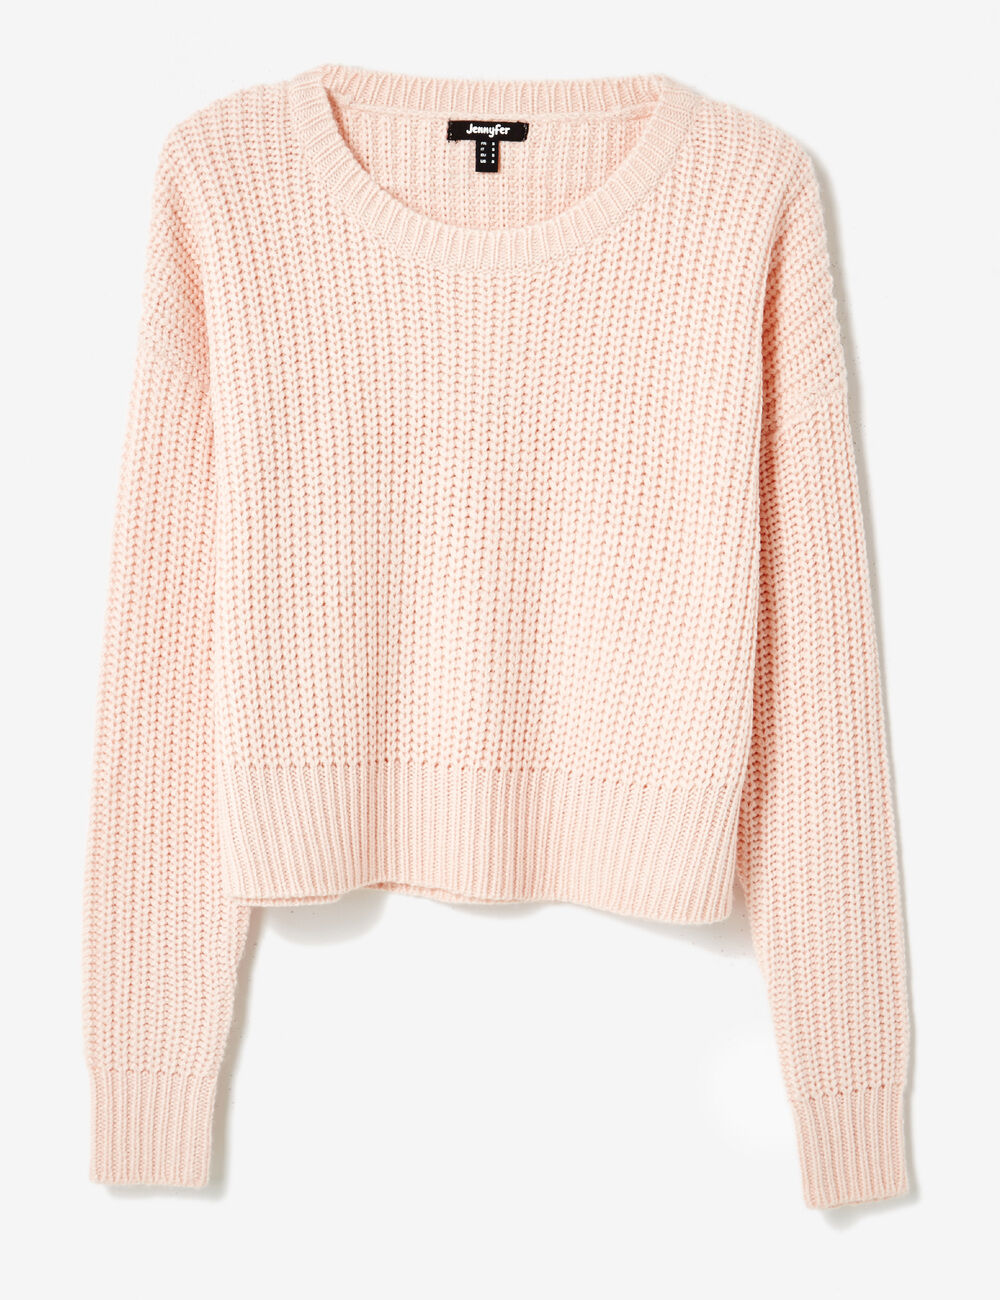 sarah louise new delicate bolero light pink sweater knit with openwork cotton